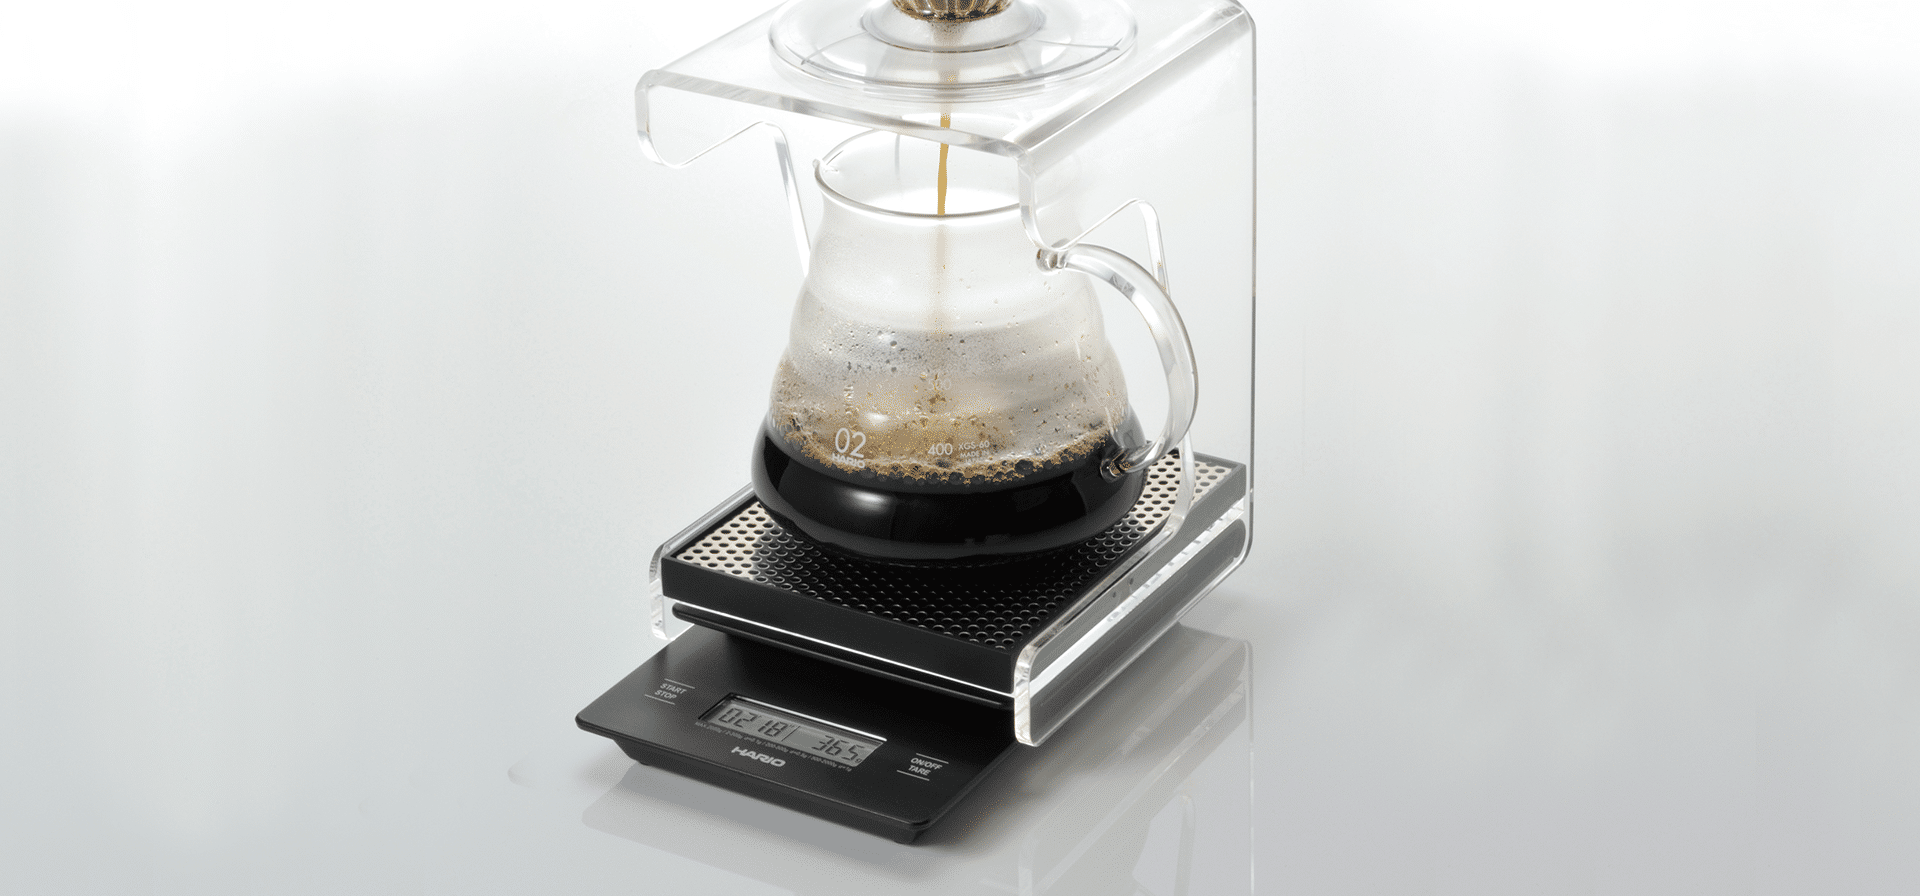 Hario Drip Coffee Scale